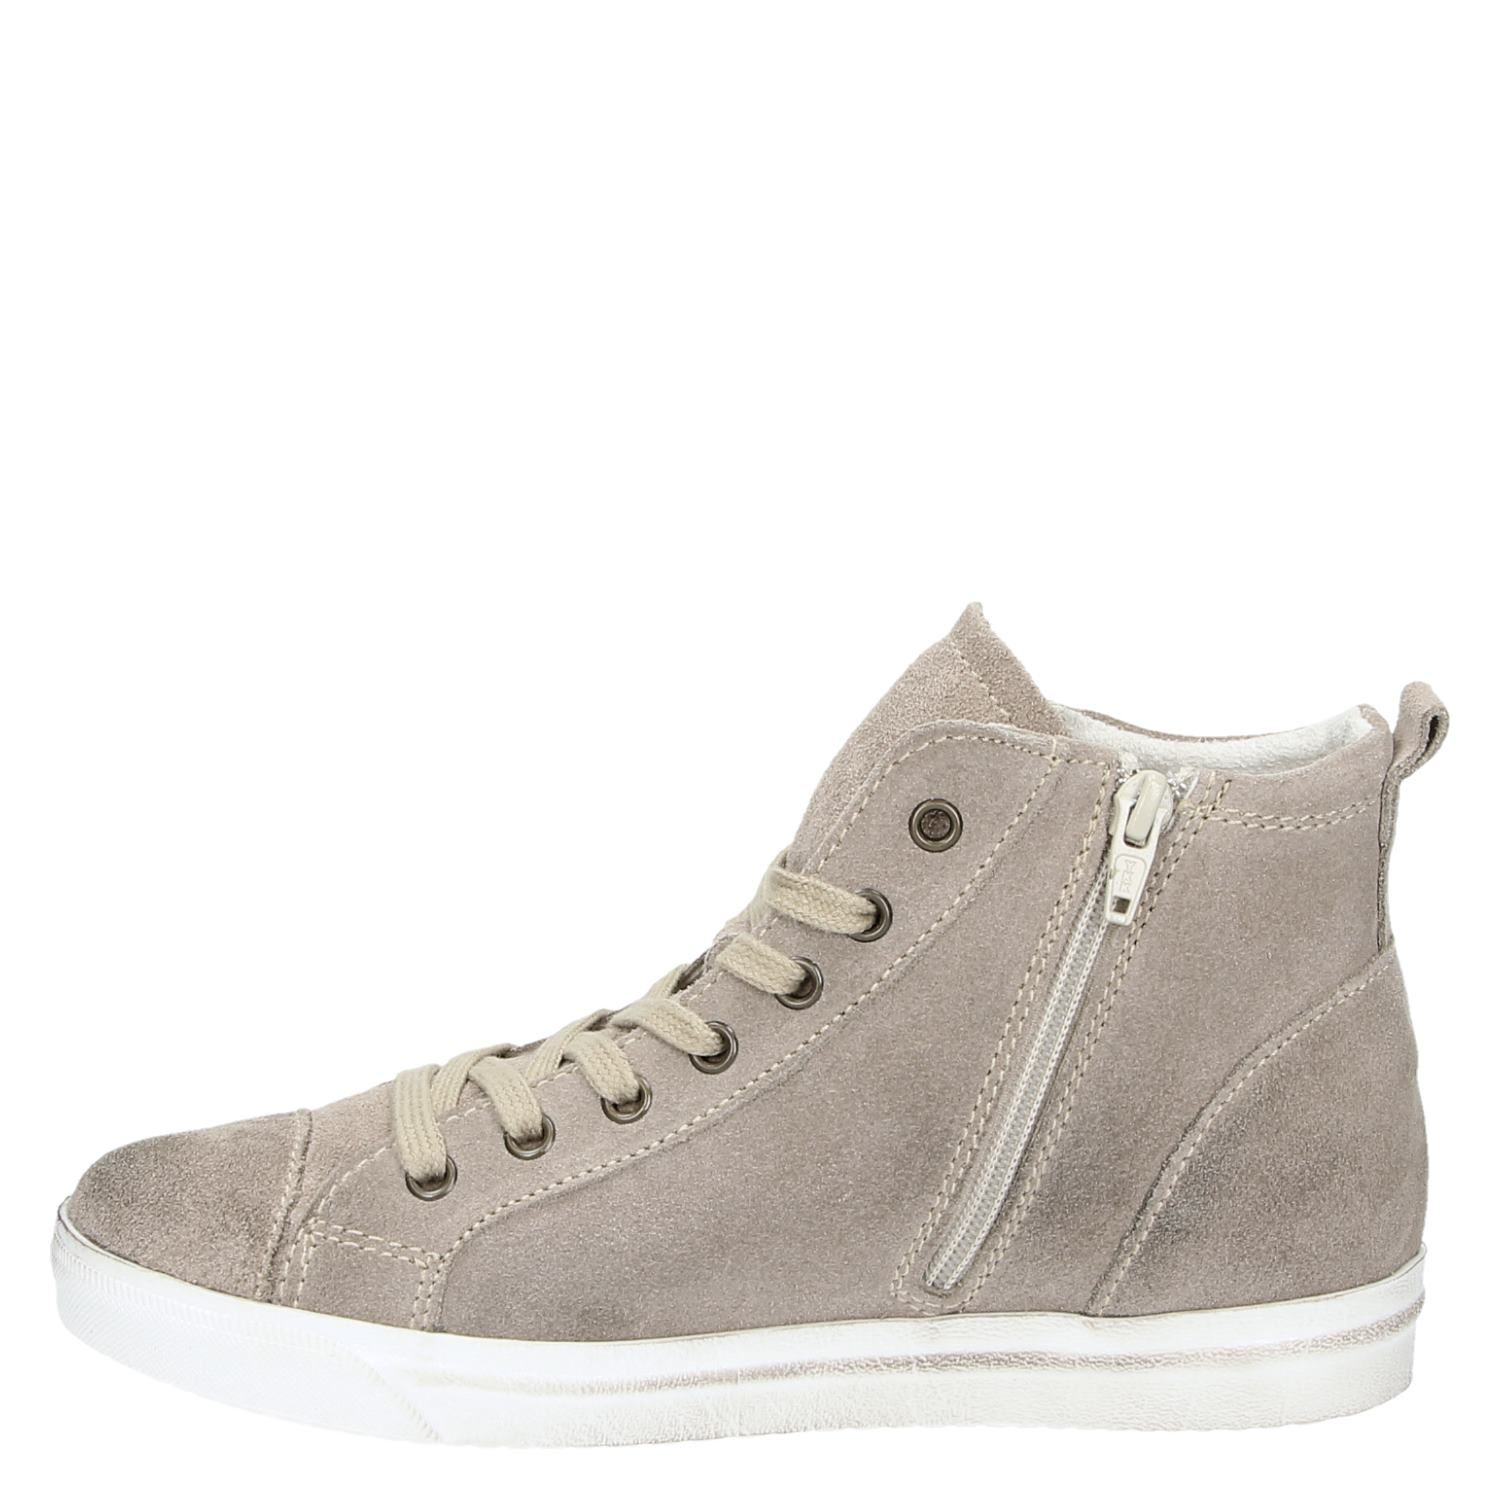 marco tozzi dames hoge sneakers taupe. Black Bedroom Furniture Sets. Home Design Ideas